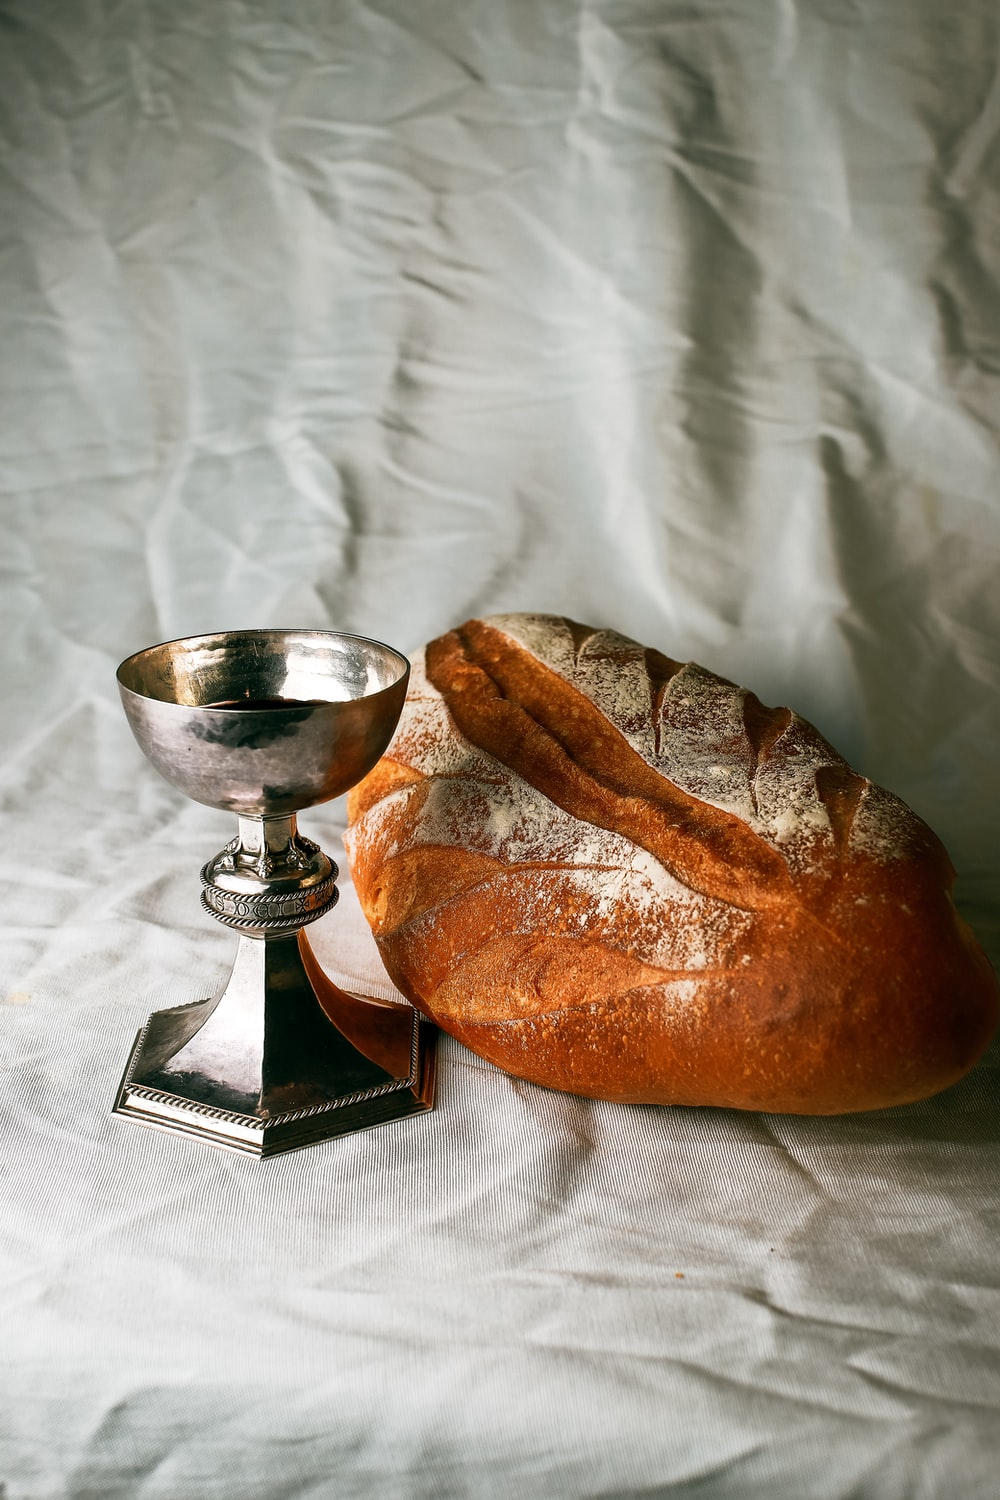 bread on white textile beside stainless steel footed bowl